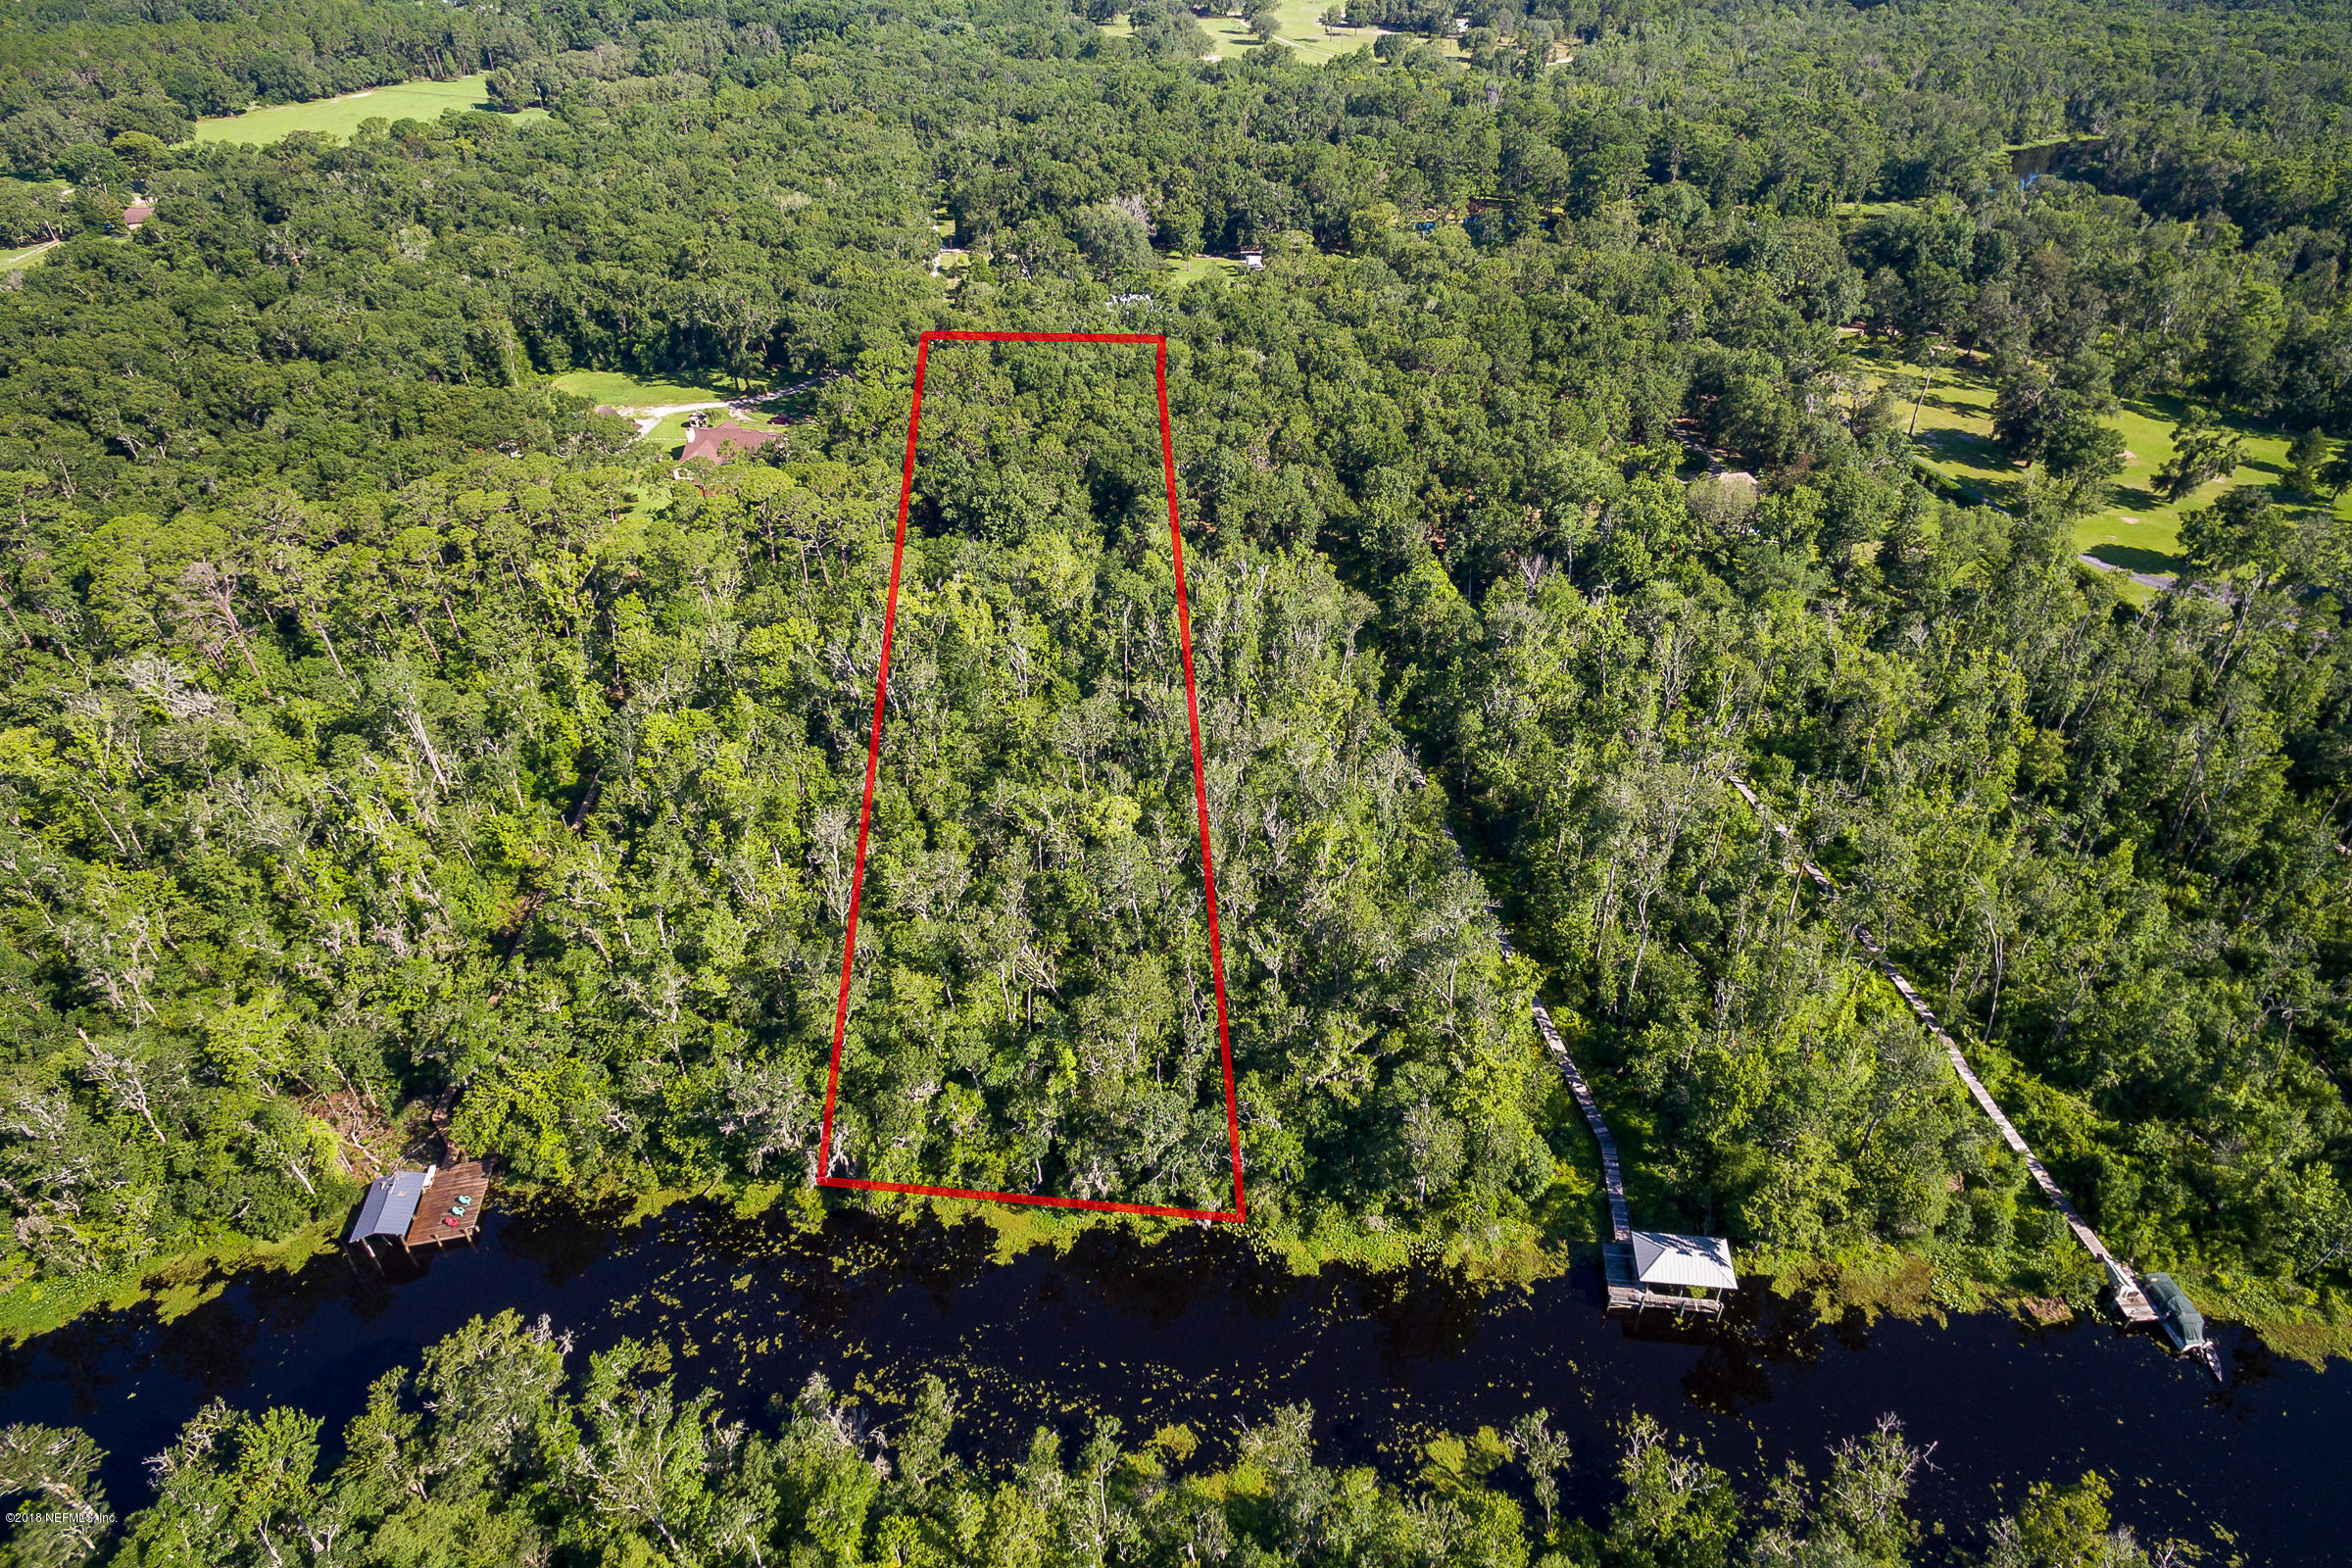 0 PETERS CREEK, GREEN COVE SPRINGS, FLORIDA 32043, ,Vacant land,For sale,PETERS CREEK,1036393